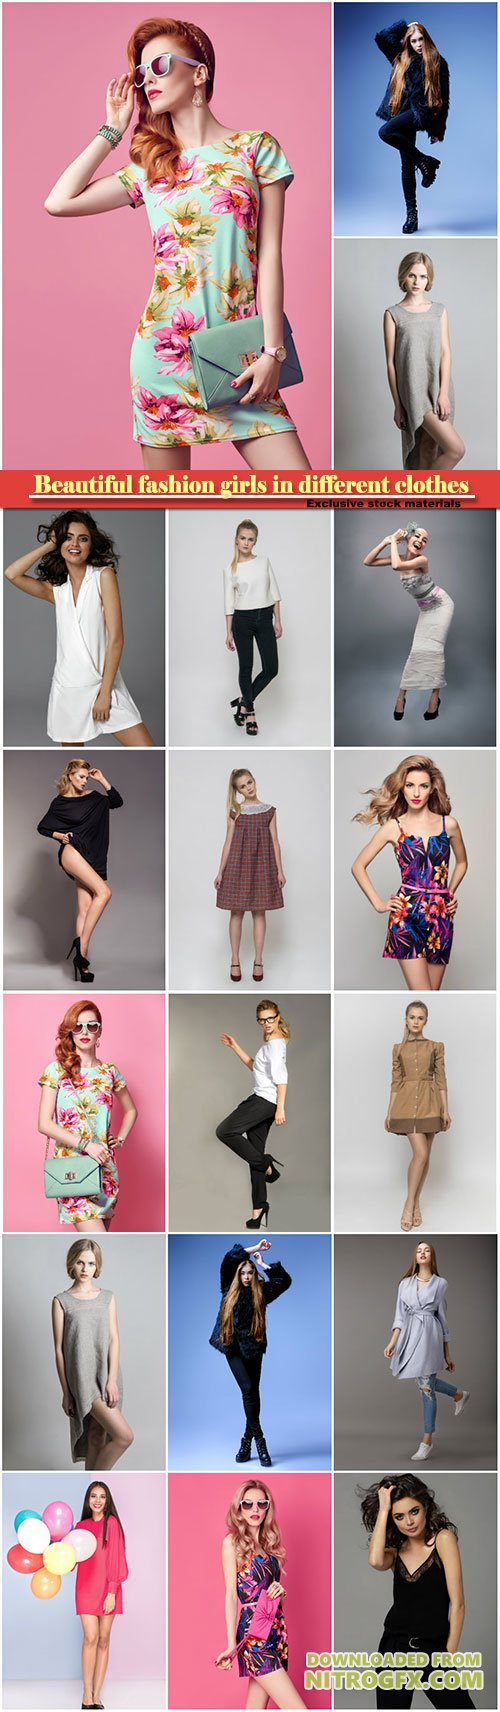 Beautiful fashion girls in different clothes